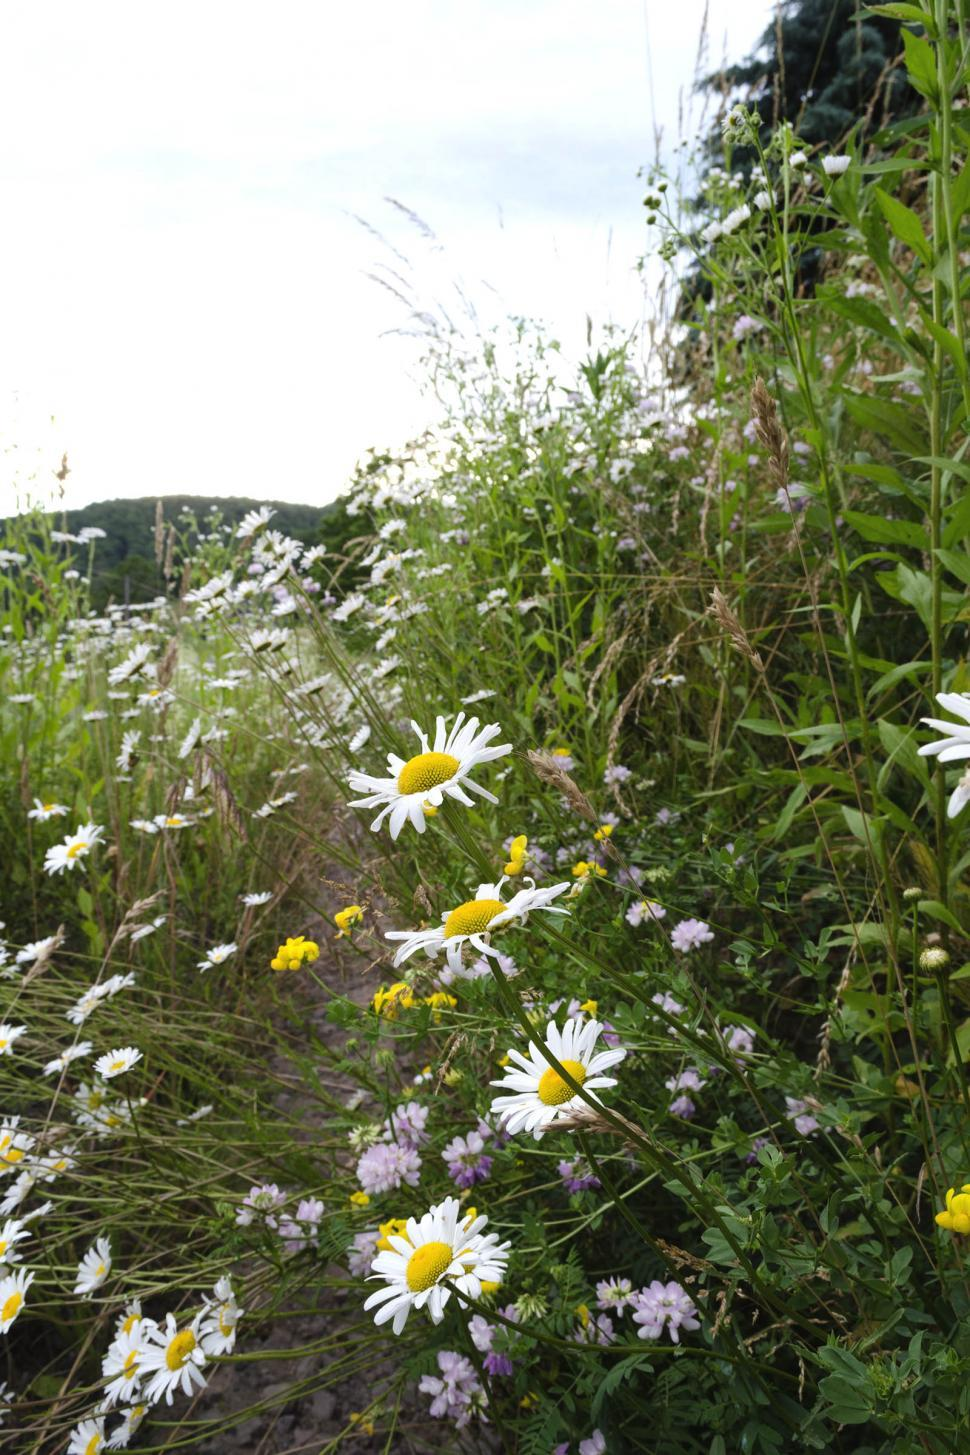 Download Free Stock Photo of Wildflowers along the side of a rural road